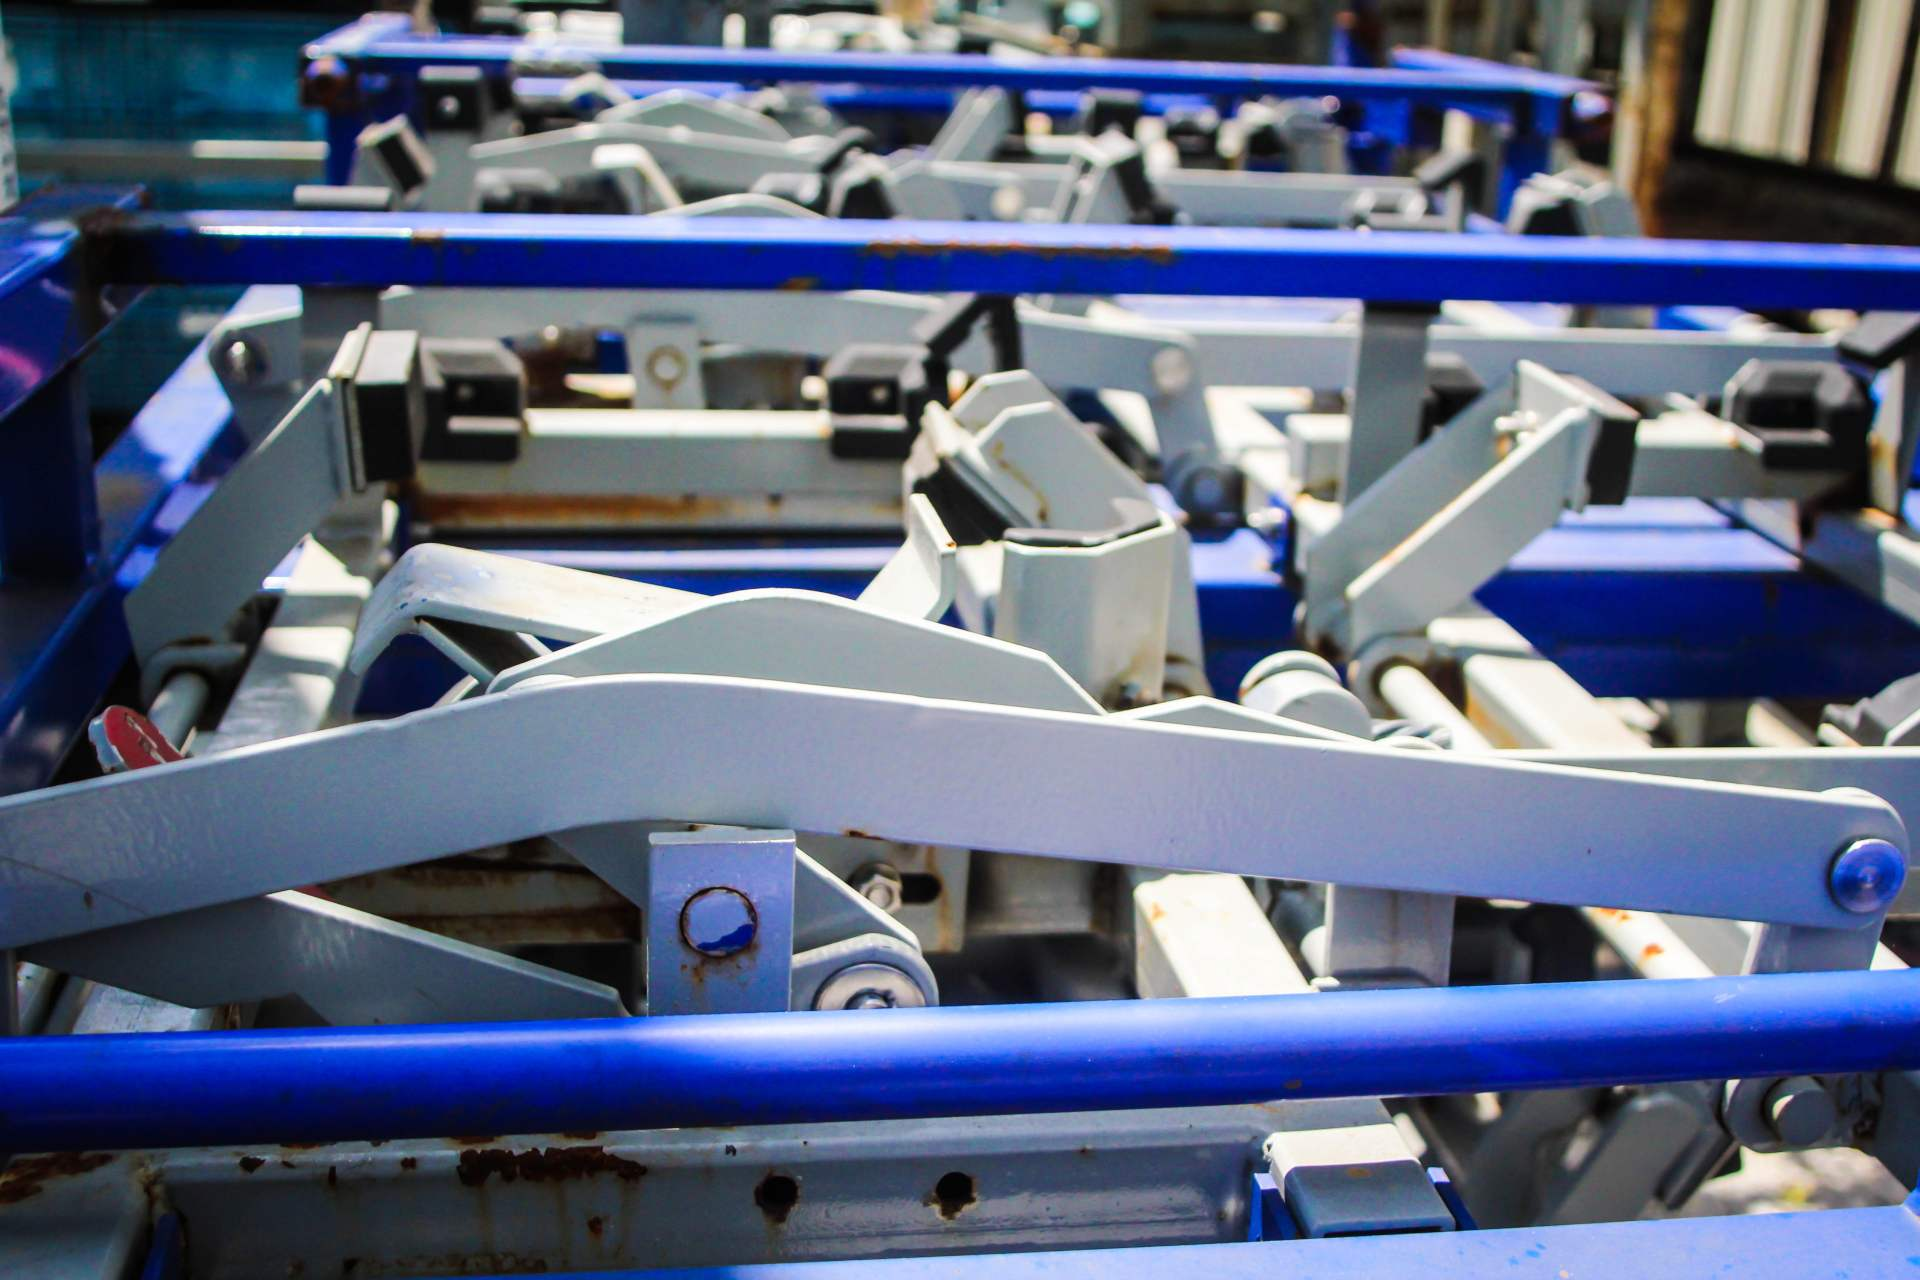 Blue Collapsible Racks